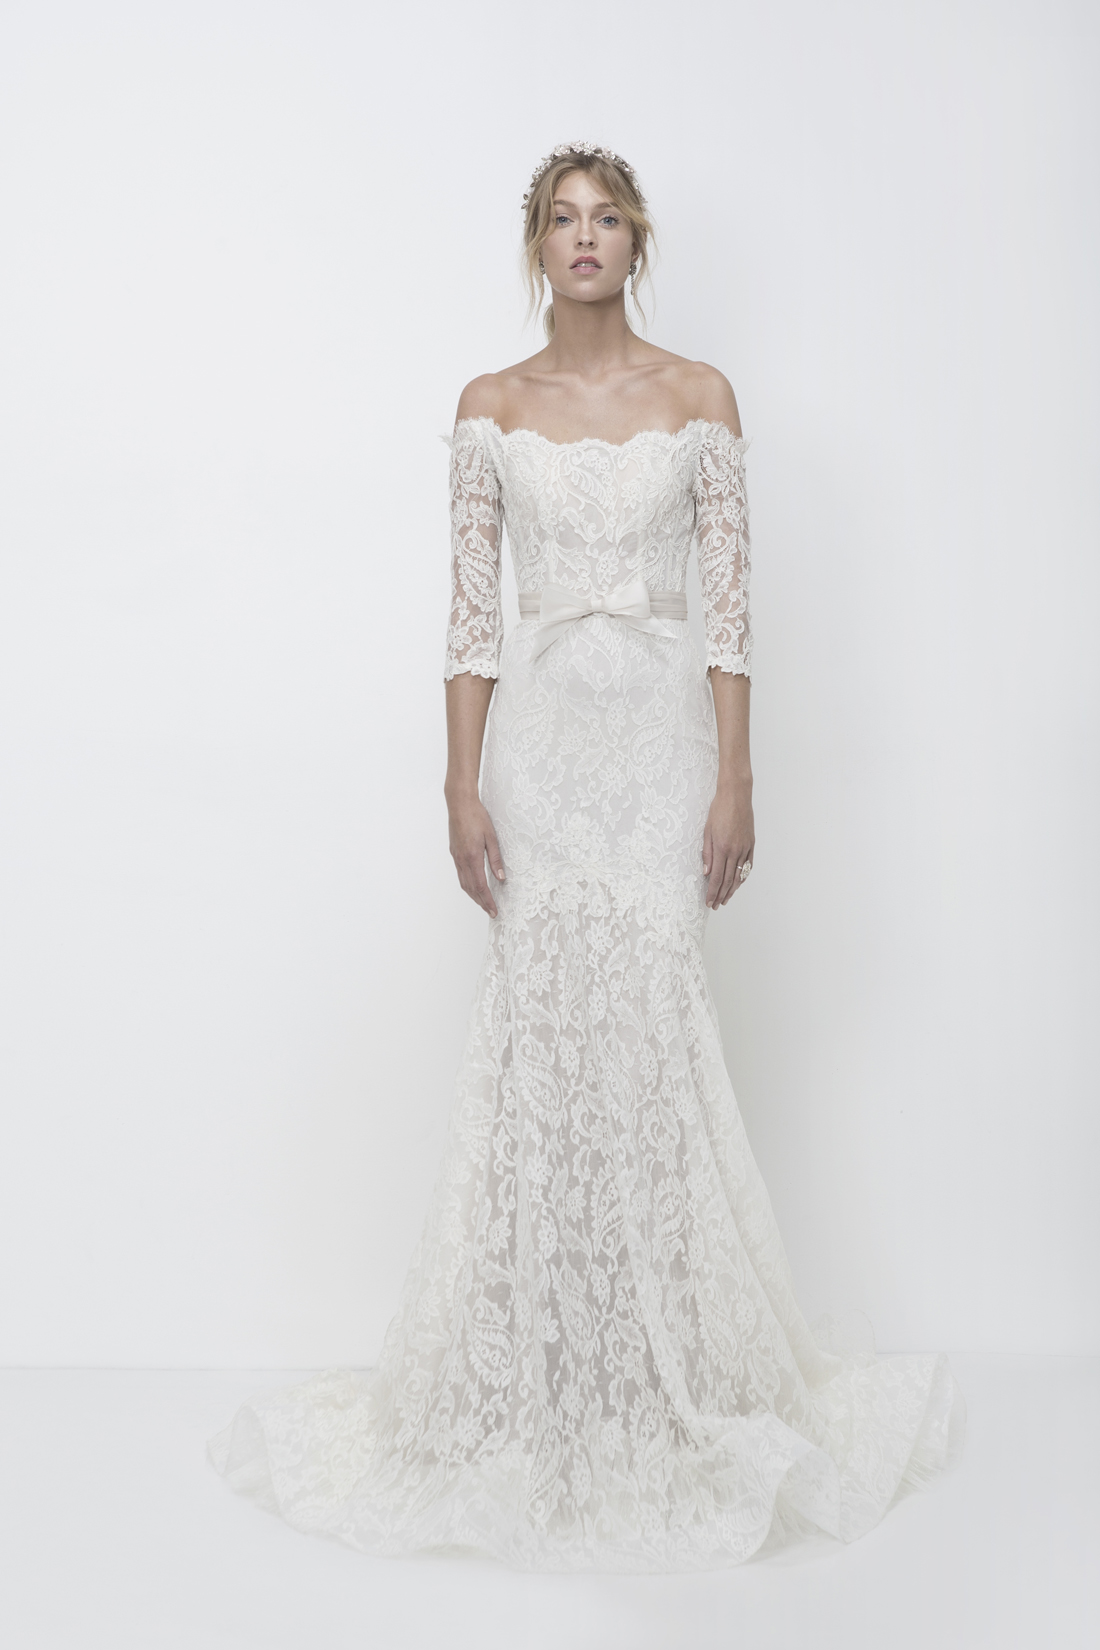 Vanessa lace off the shoulder wedding dress with bow Lihi Hod 50 shades of grey fifty shades freed wedding gown get the look